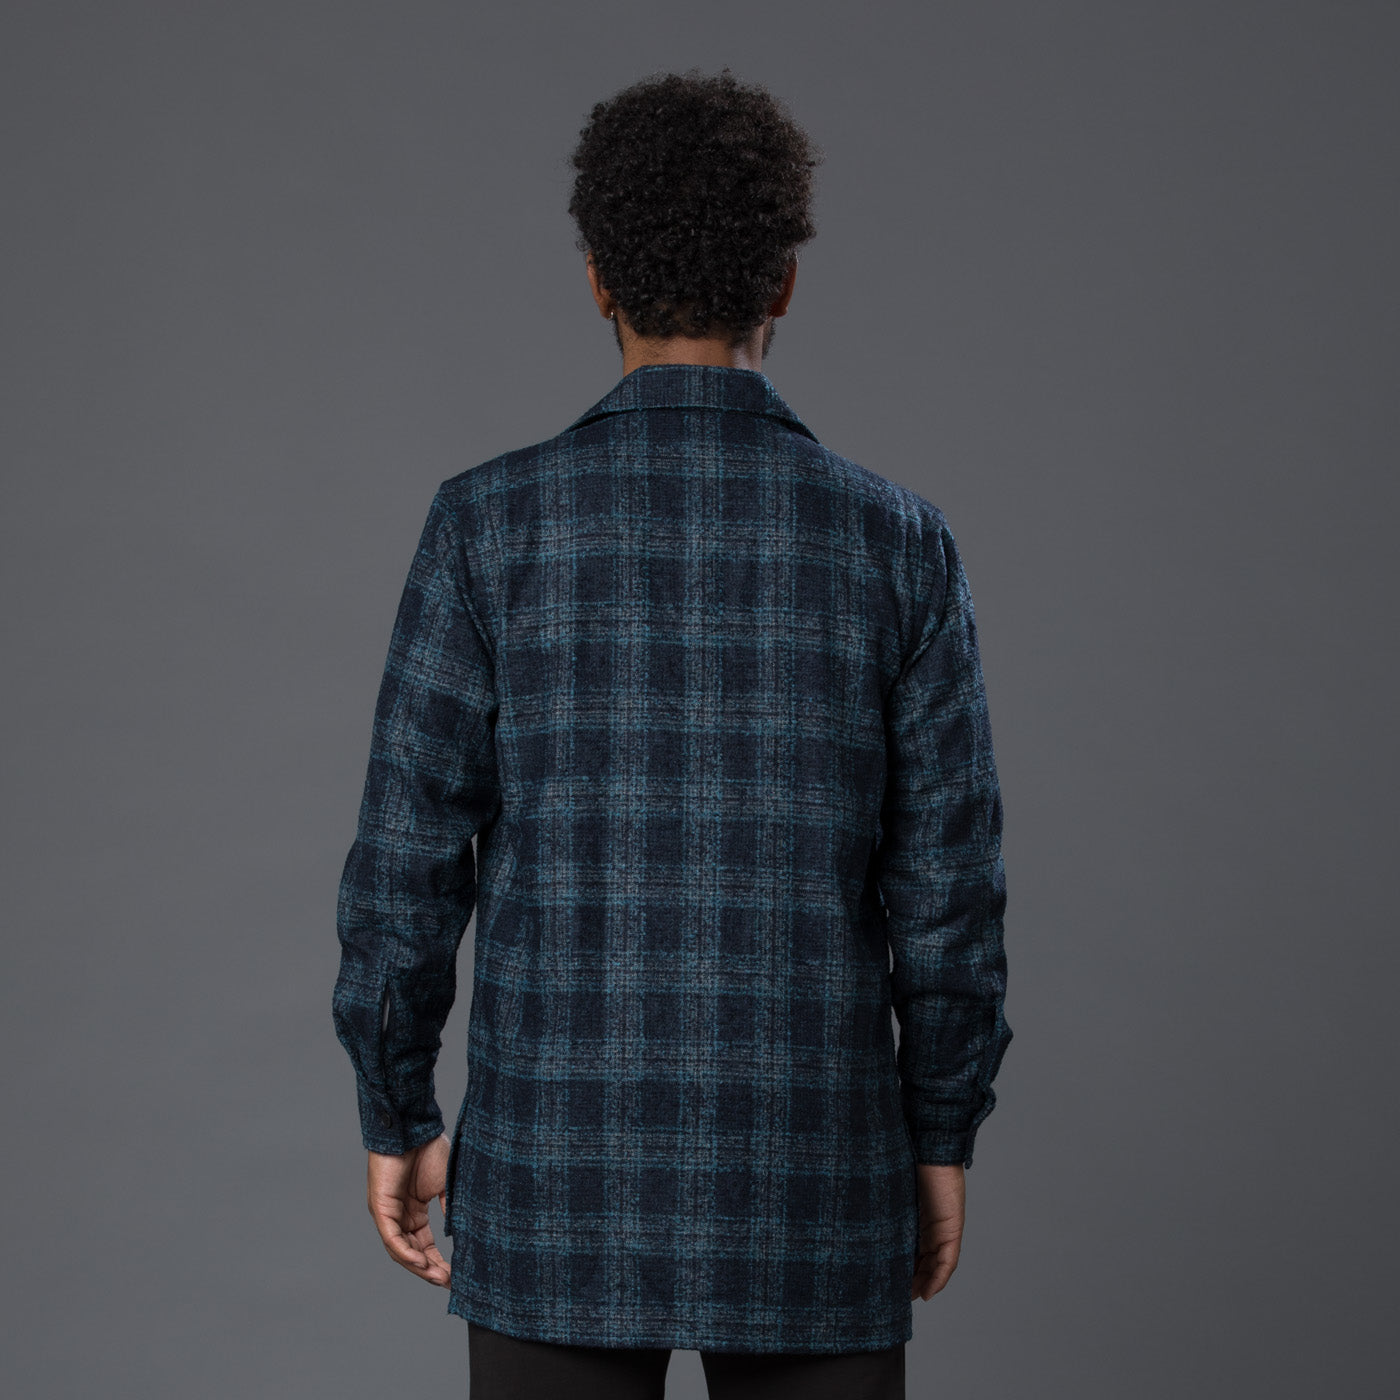 Deveaux Loro Piana Plaid Shirt